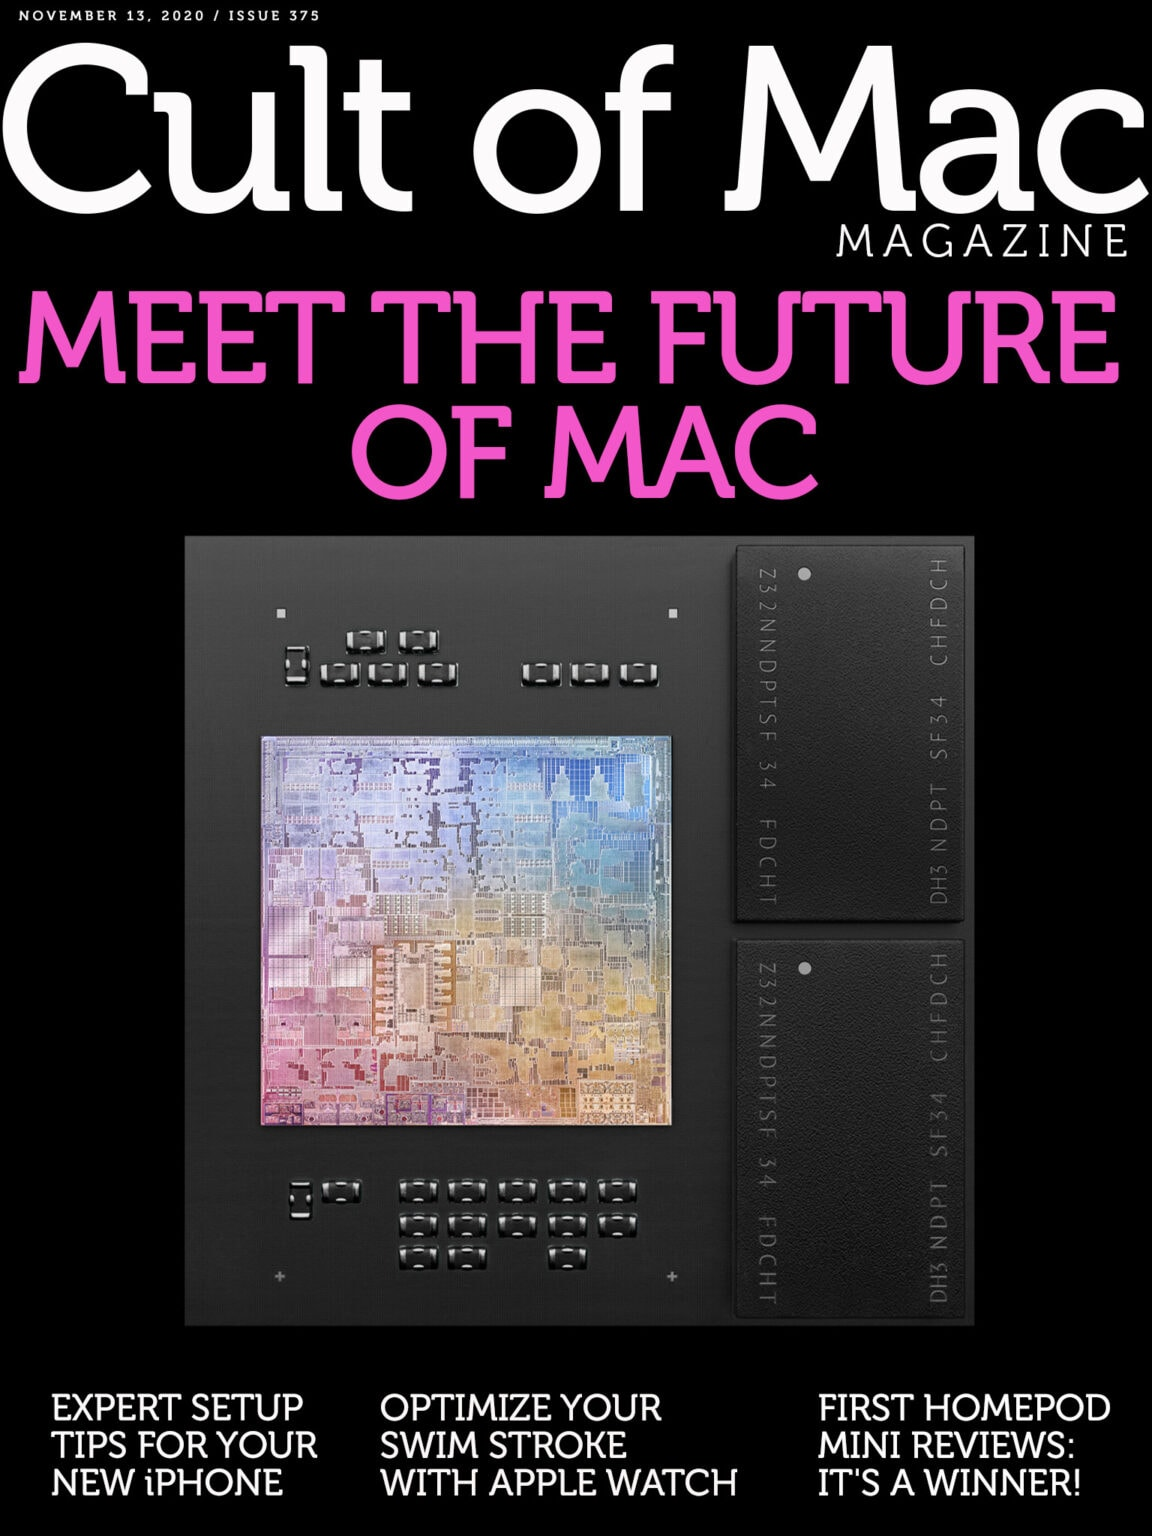 From macOS Big Sur to the might M1 chip, this week was all about the Mac.